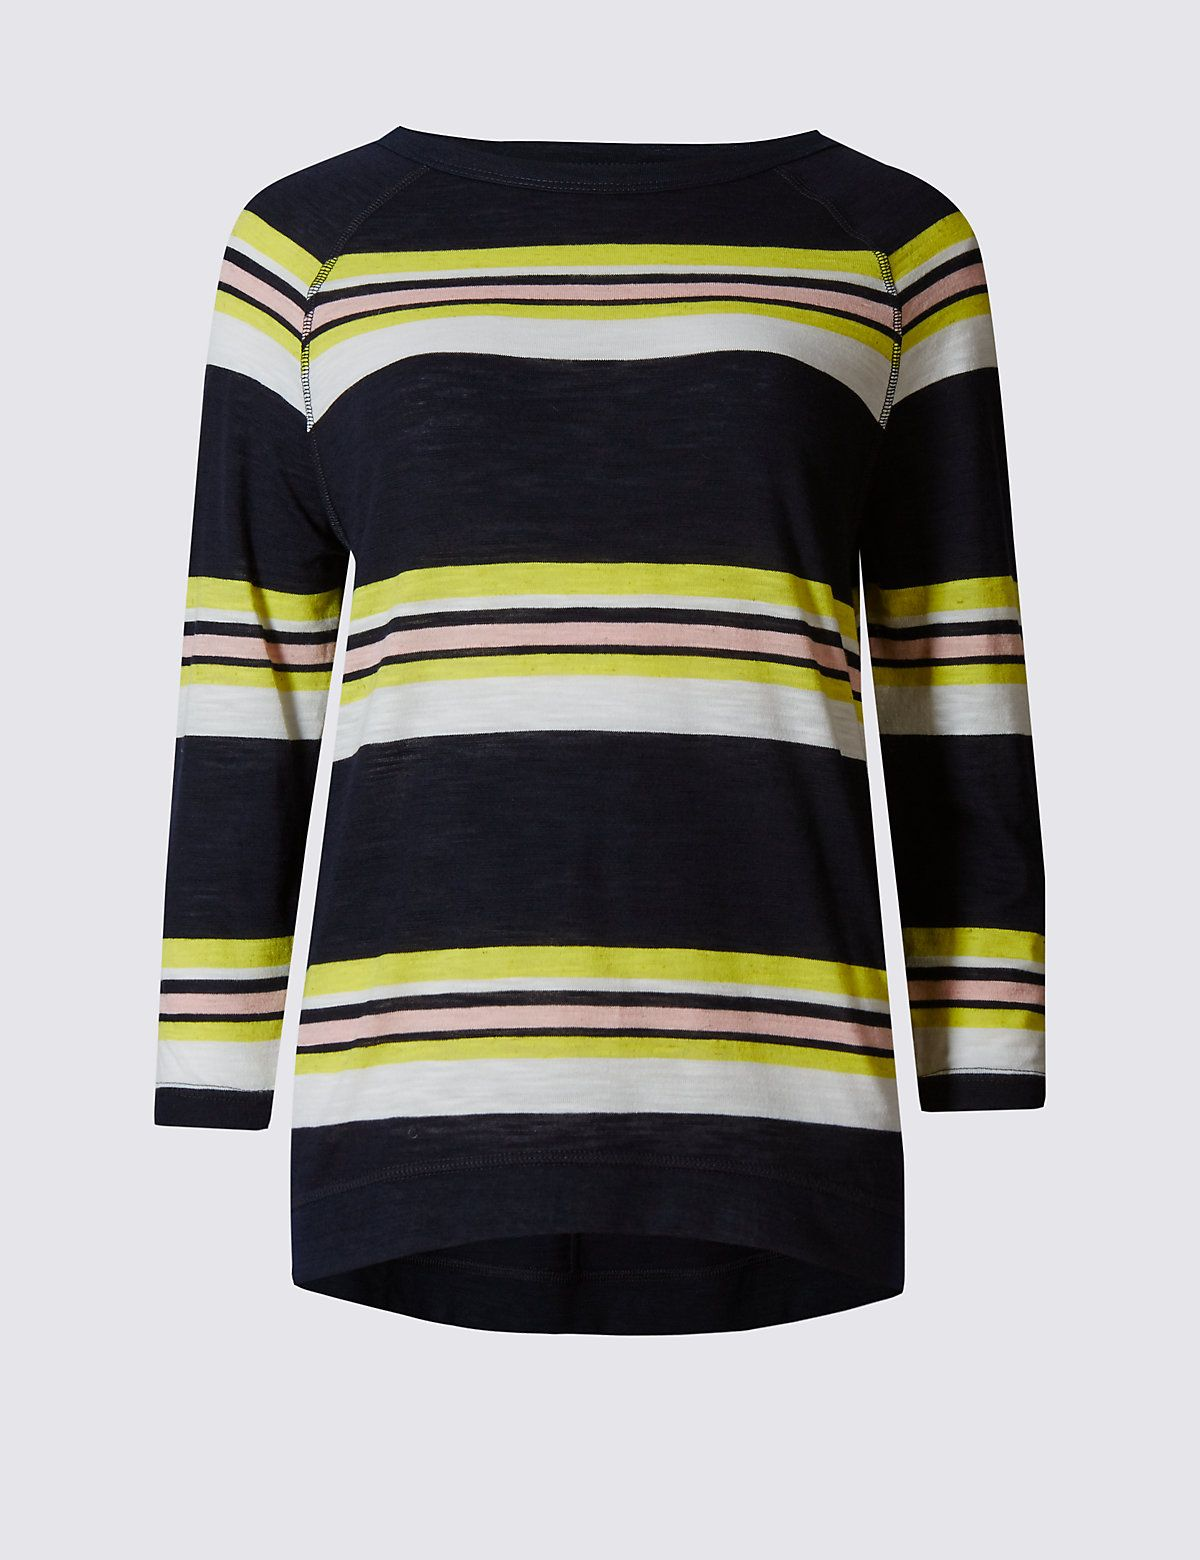 M&S Collection Striped 3/4 Sleeve T-Shirt: Cut for a relaxed, loose fit, choose your normal size.… #UK #Menswear #WomensFashion #KidsClothes